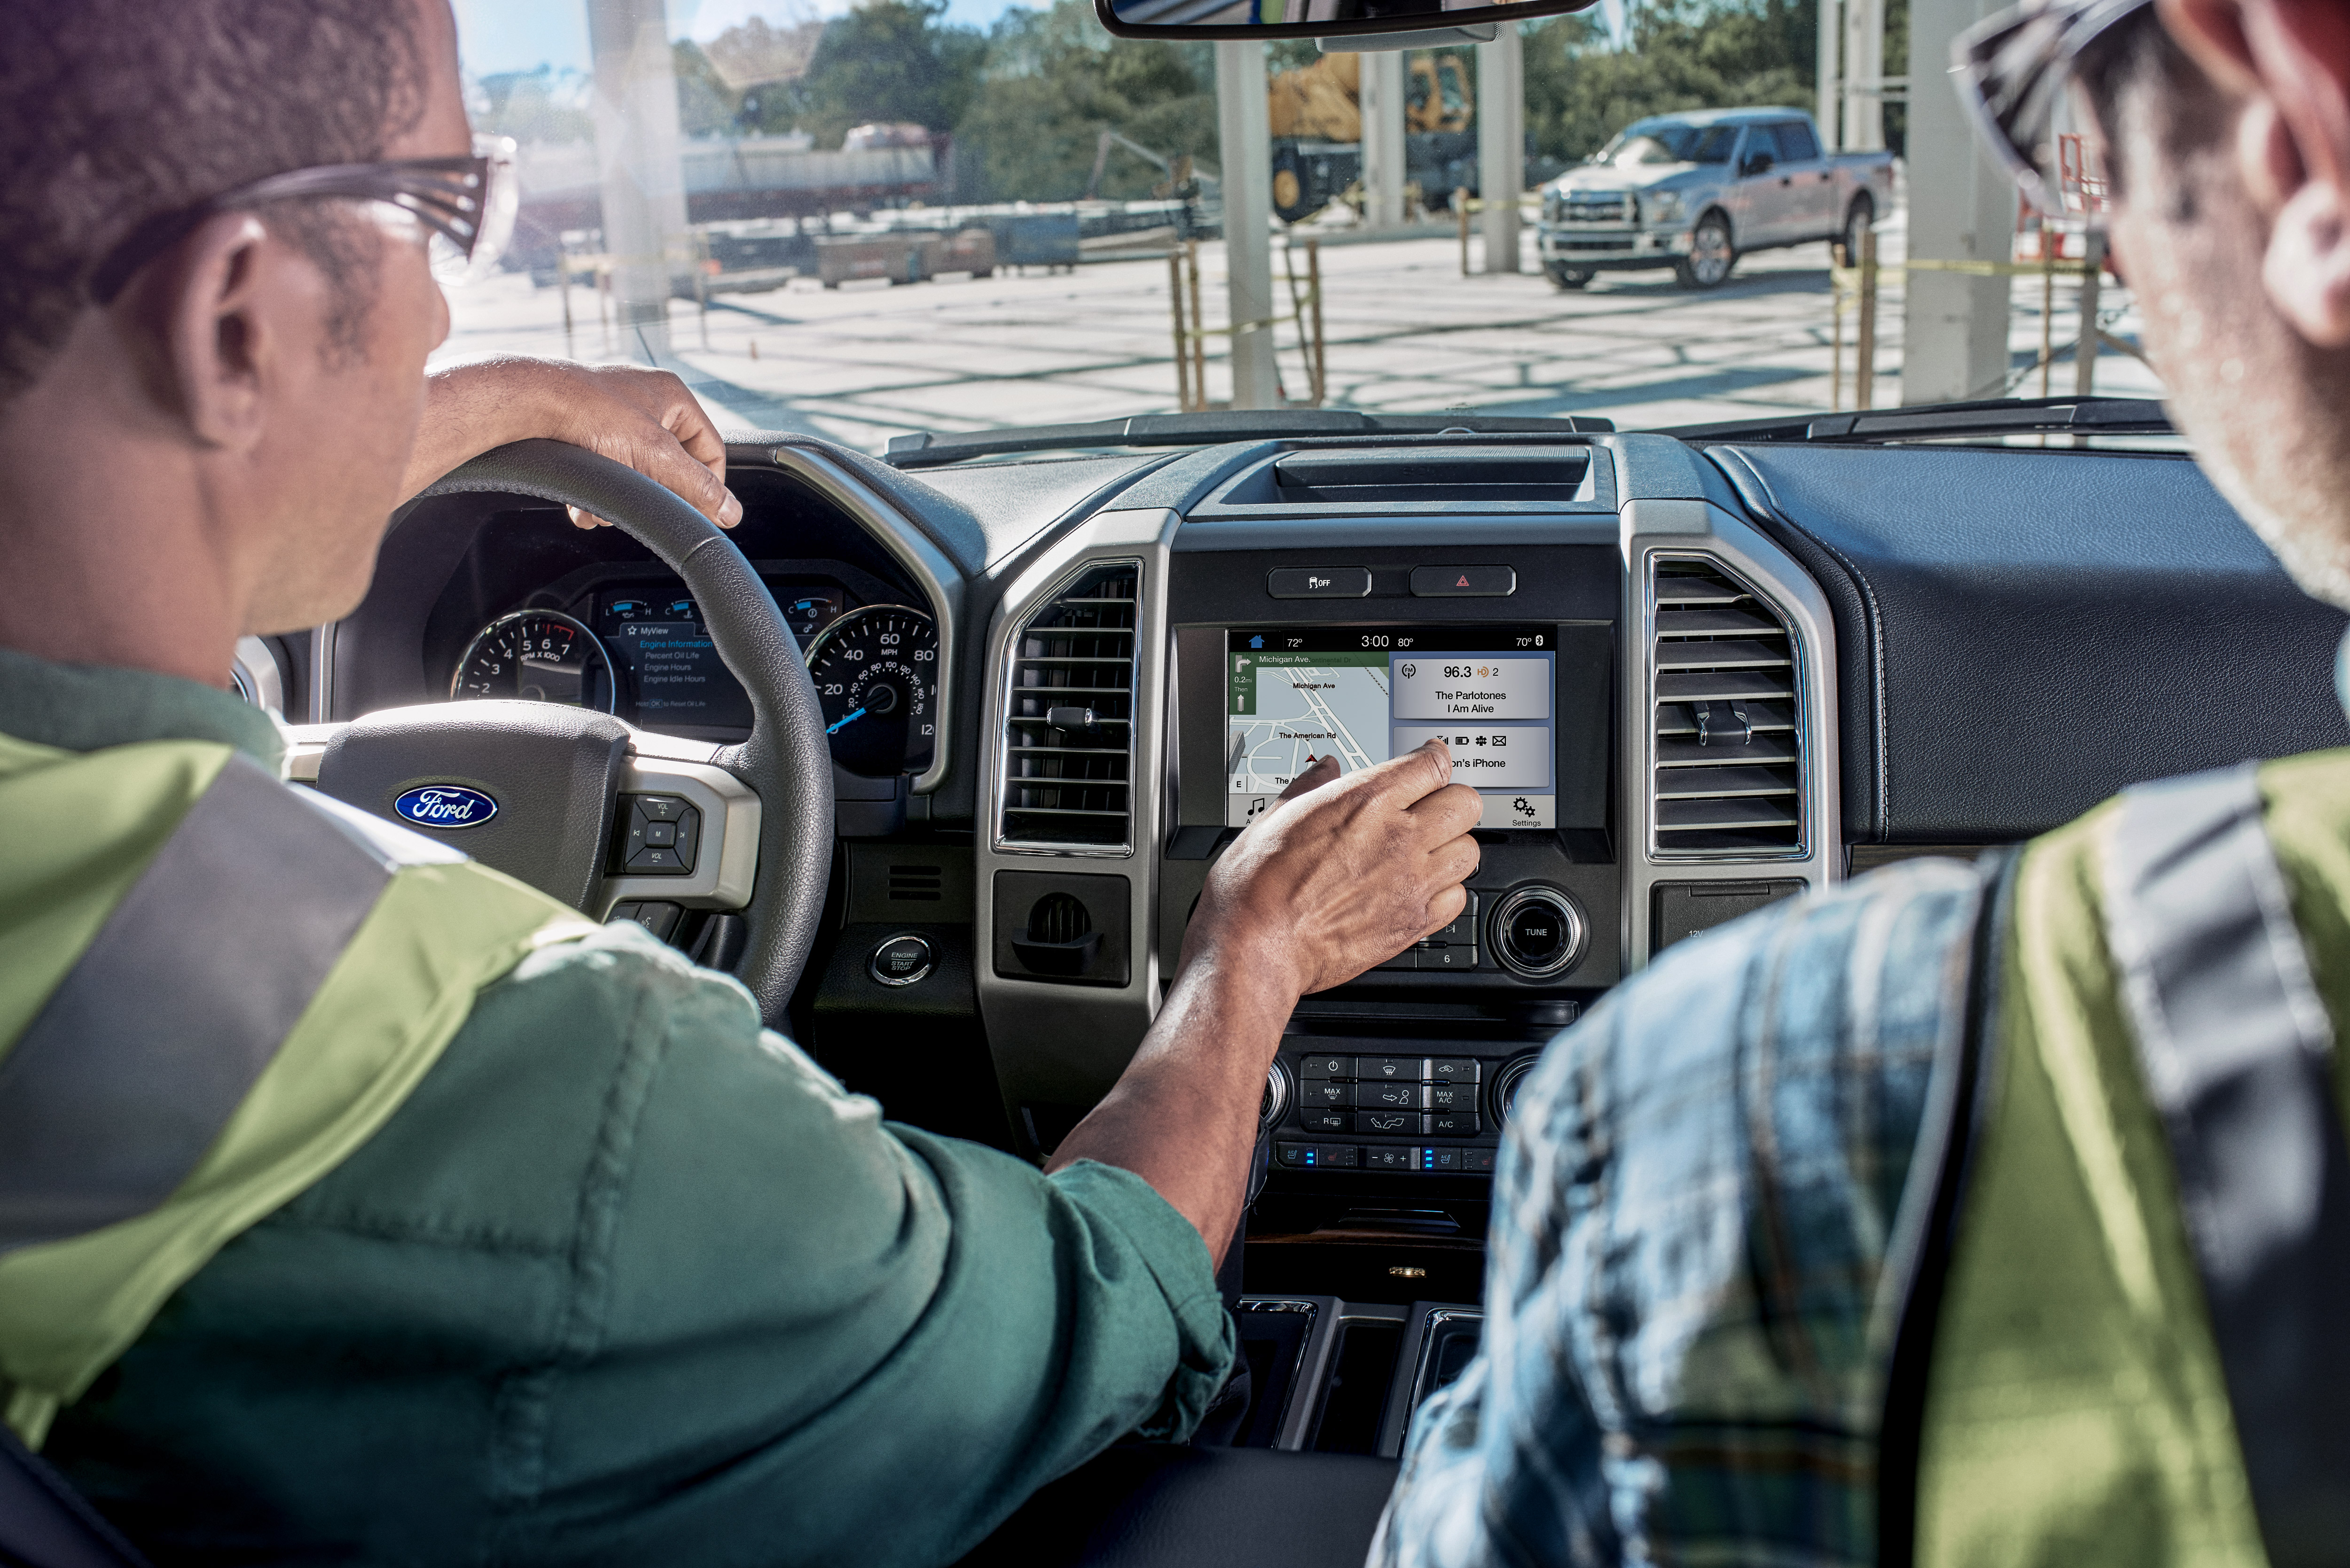 2020 Ford F-150 Interior |Toronto, ON.jpg